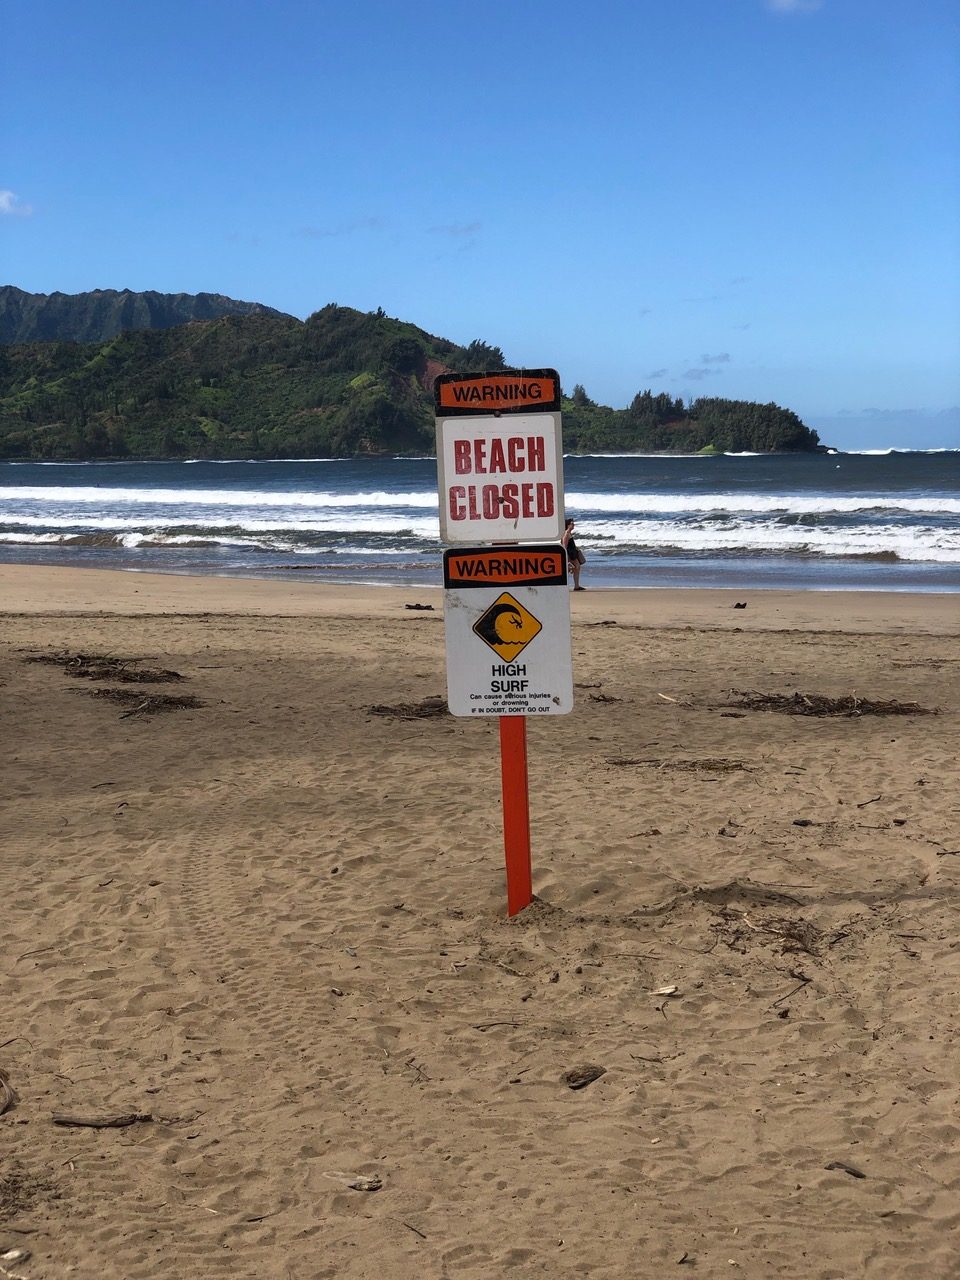 Hanalei Beach is closed, but funny enough no one seemed to care